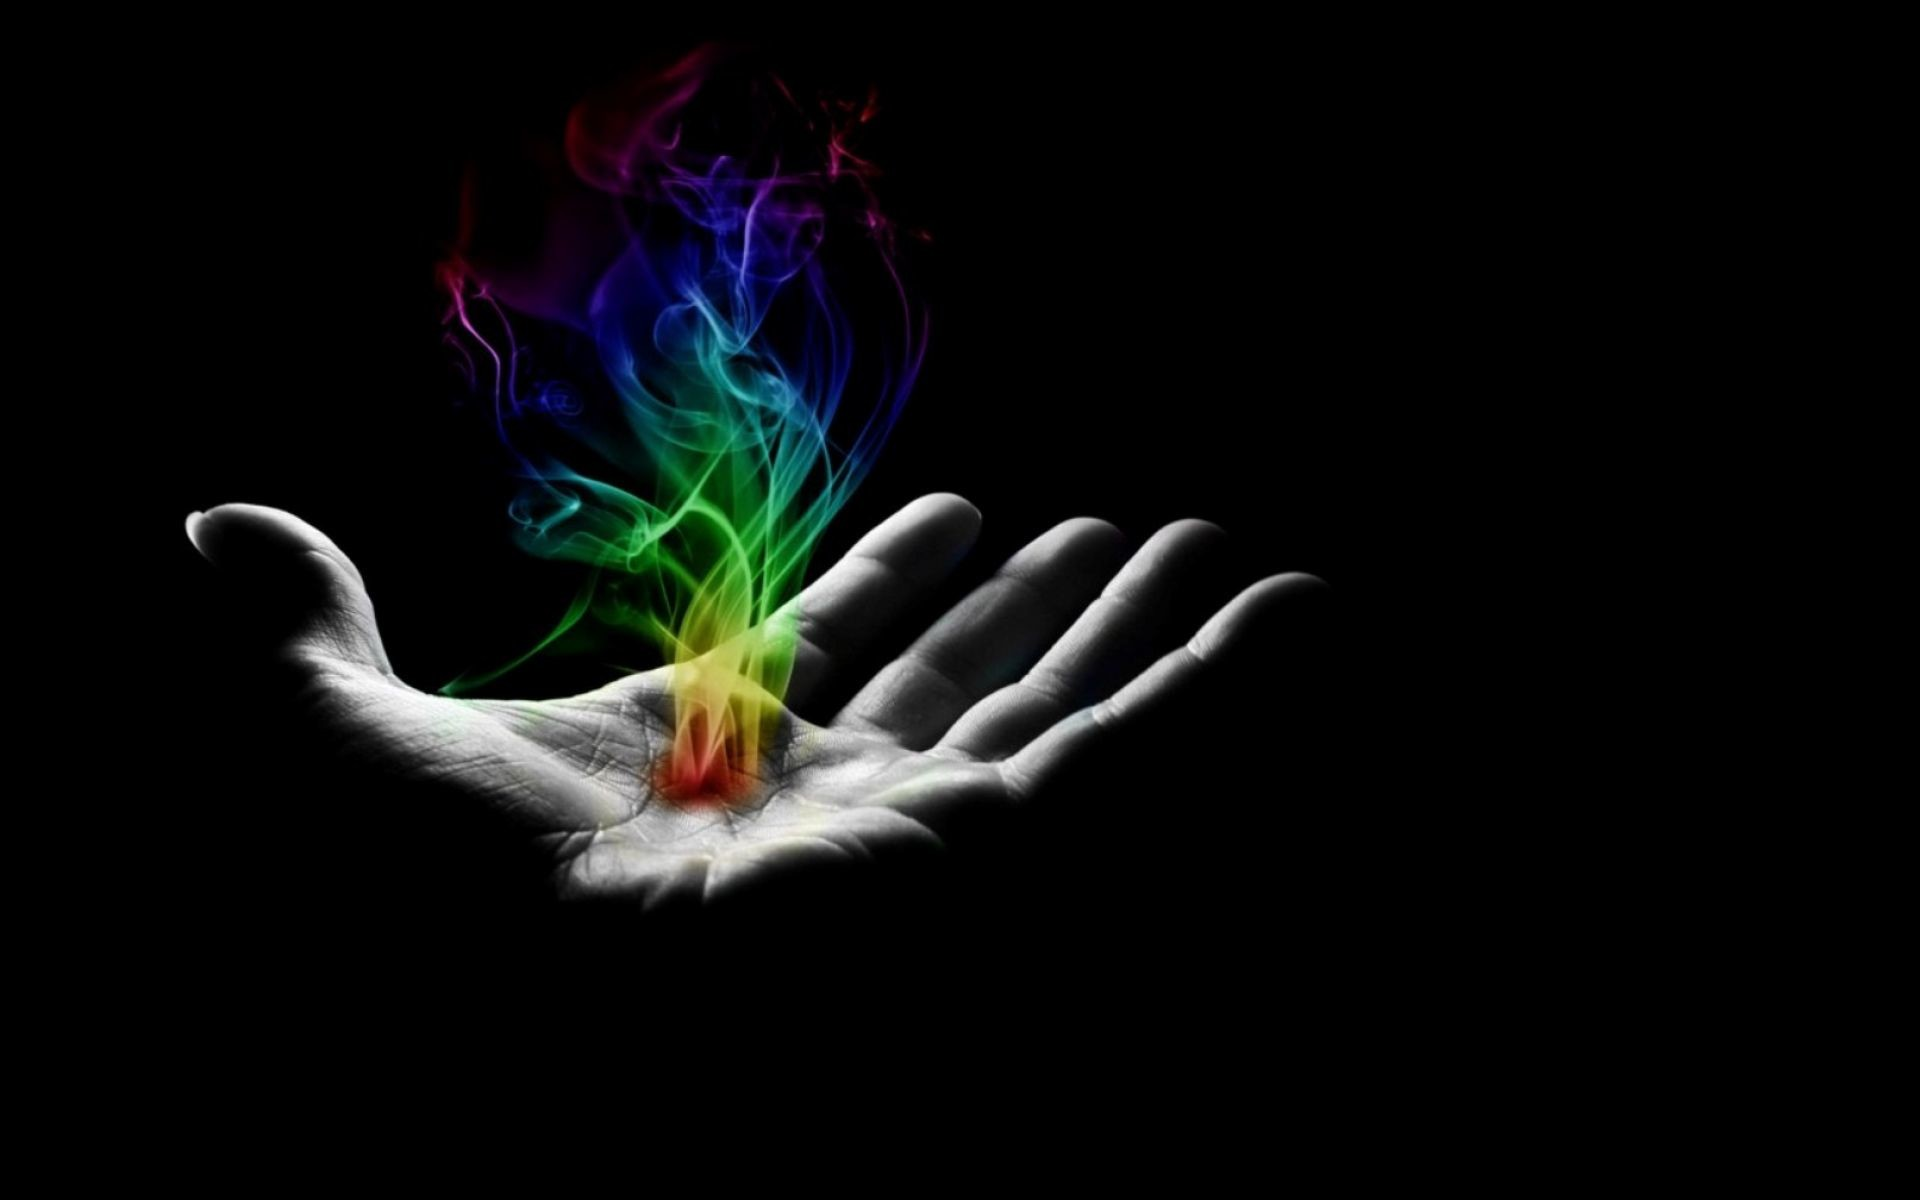 9/3d-magical-hand-with-color-smoke-wallpaper.jpg  1200x/wp-content/uploads/HTML/Magical-wallpaper-hd-66.html